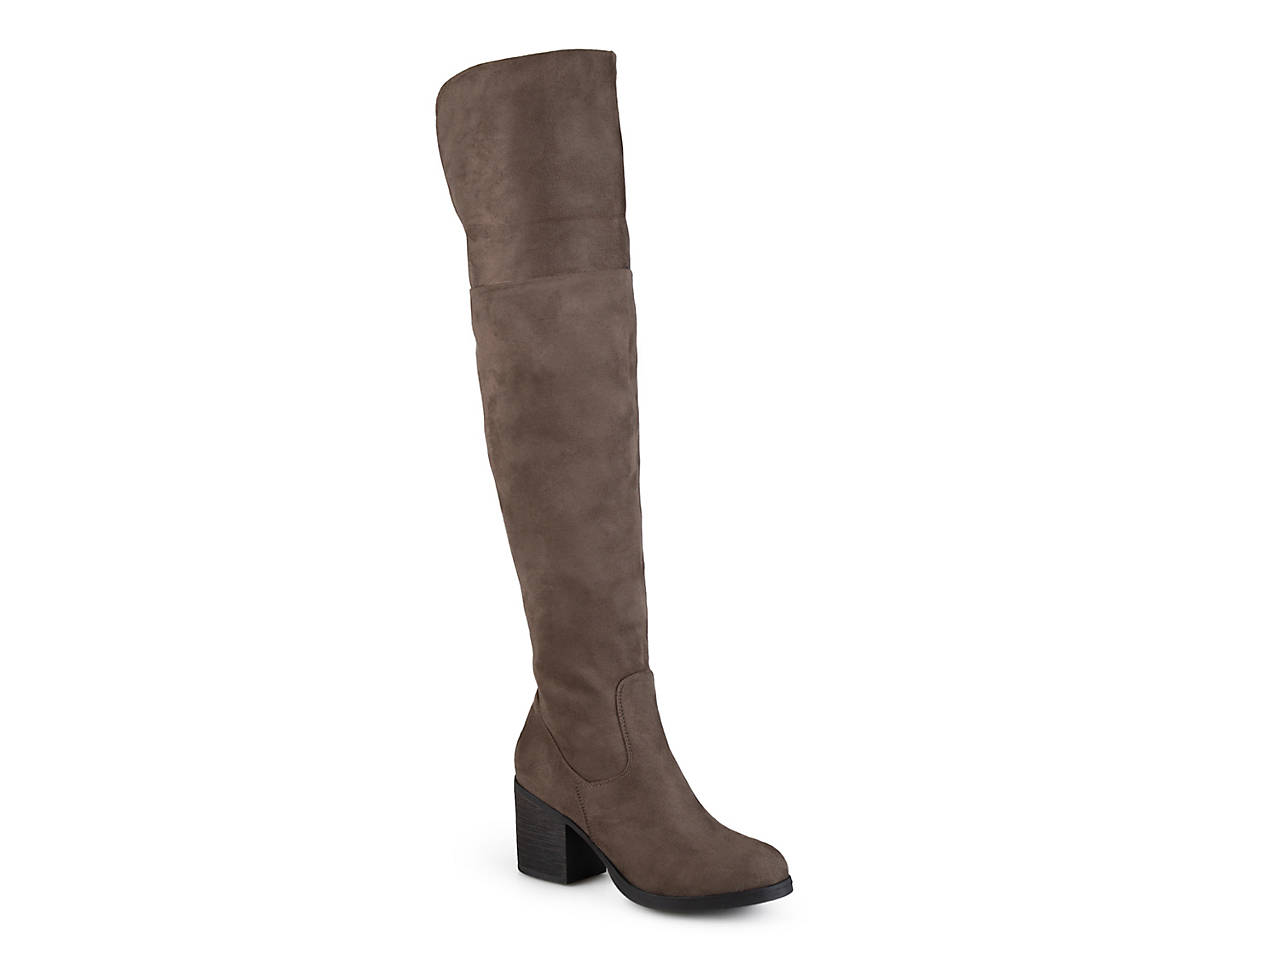 Journee Collection Sana ... Women's Over-The-Knee Boots wholesale online PJchRnkzcu